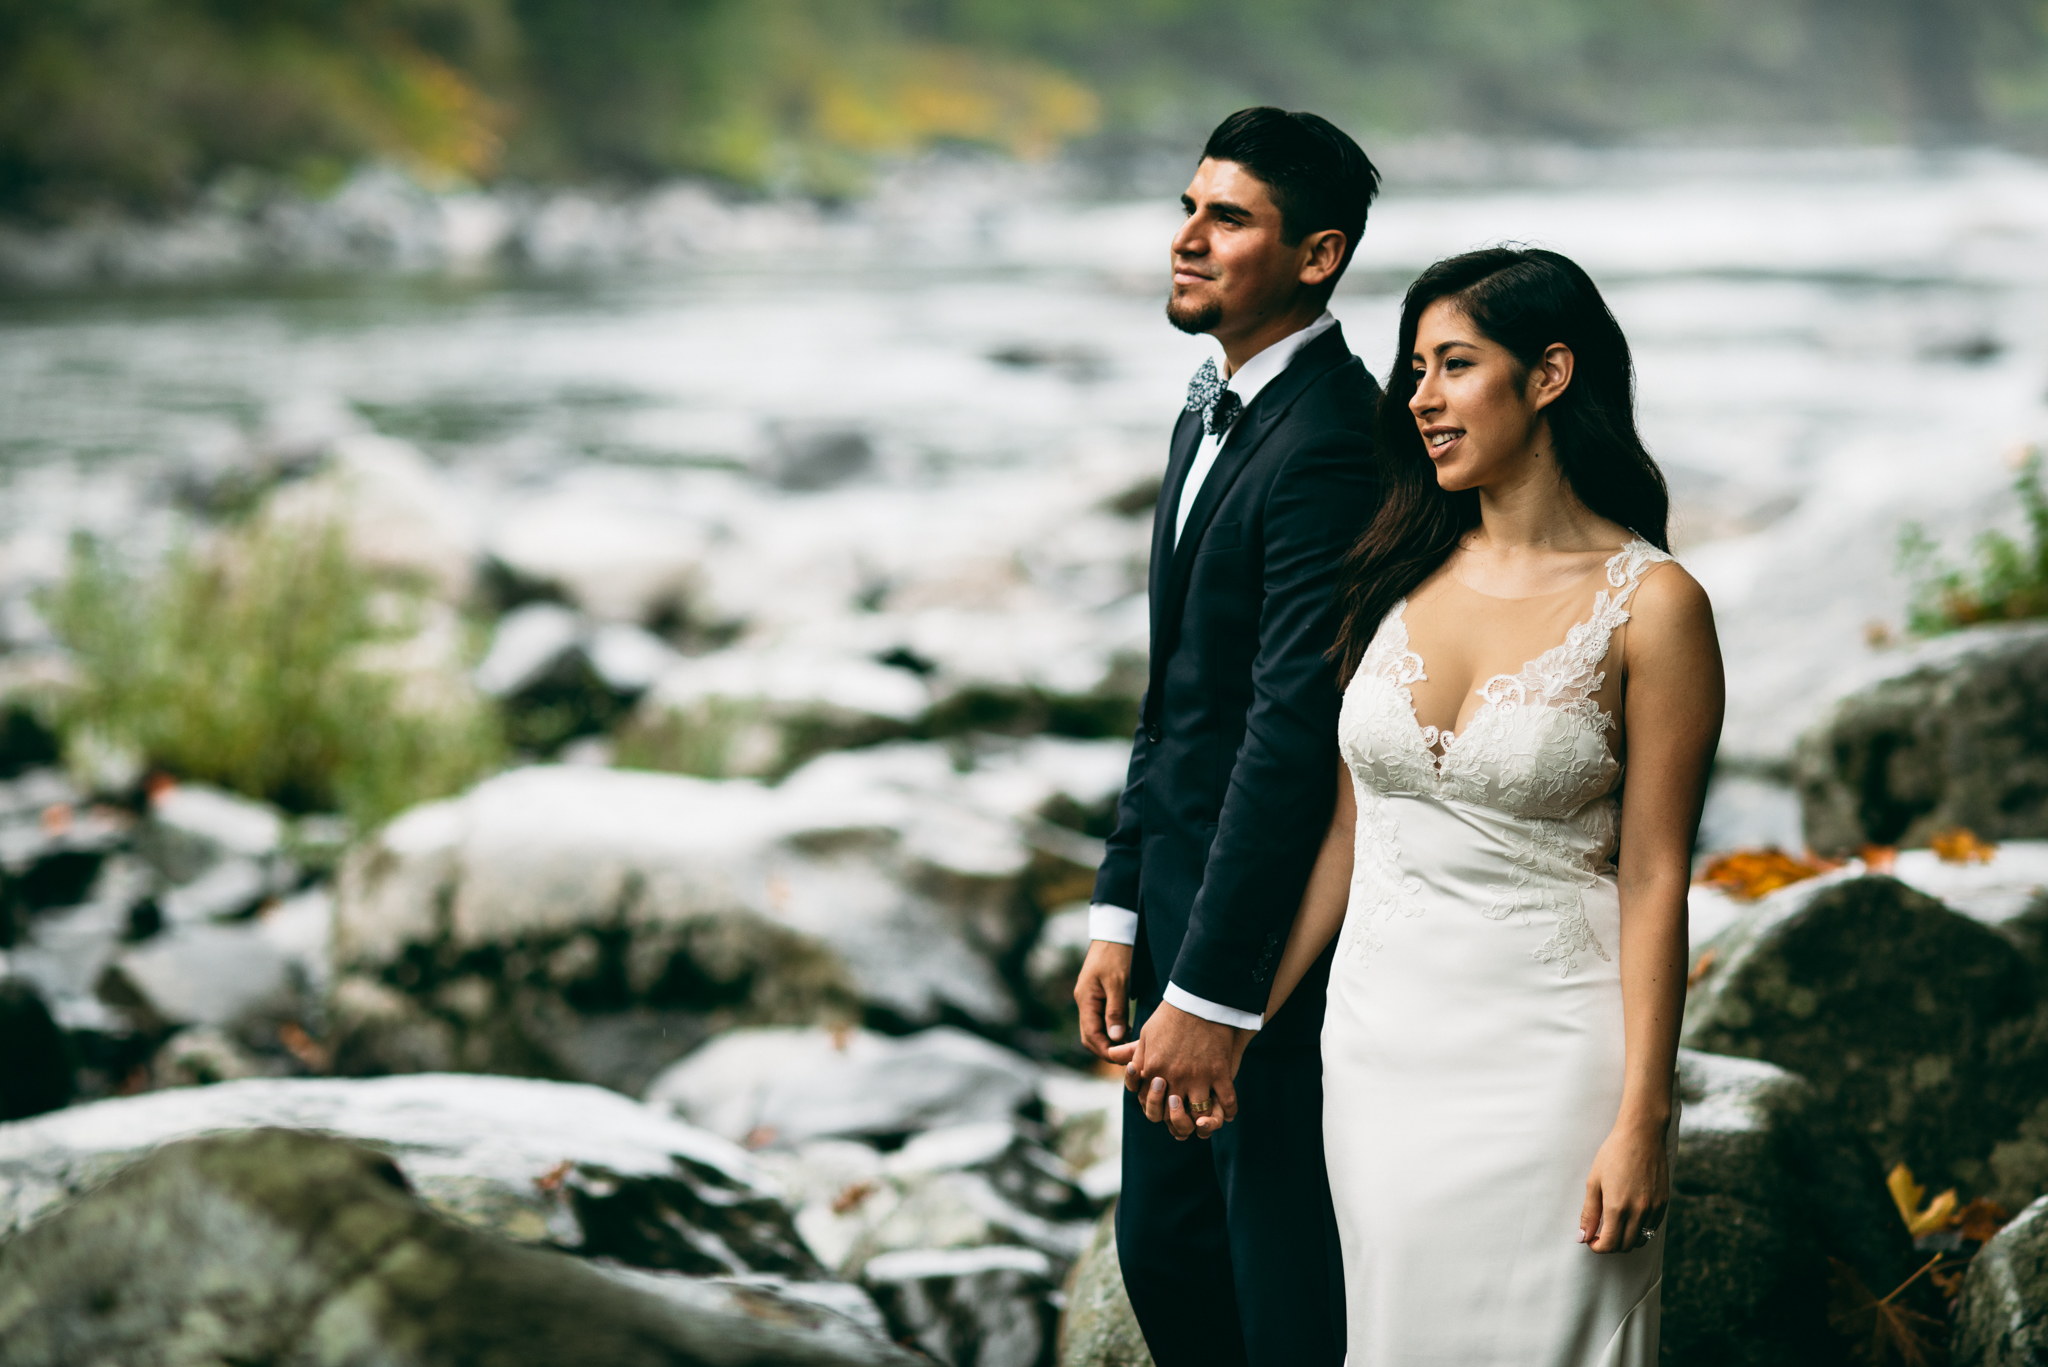 ©Isaiah & Taylor Photography - Los Angeles Wedding - Snoqualmie, Washington Honeymoon-016.jpg